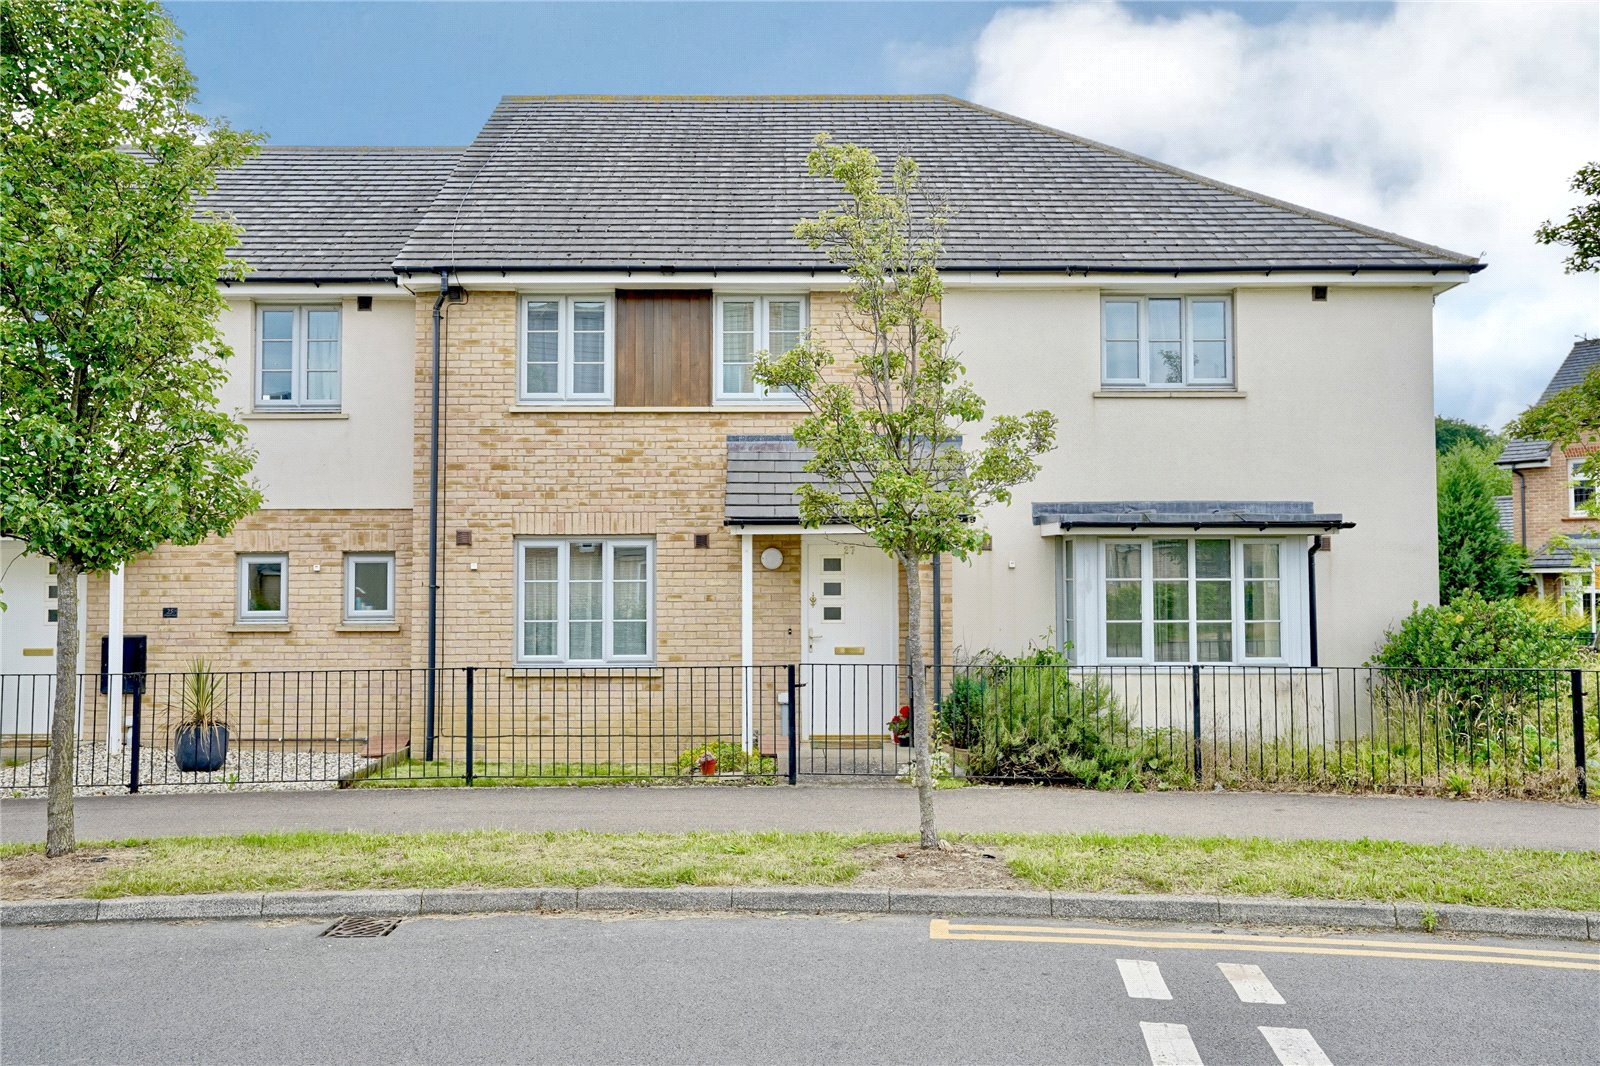 2 bed house for sale in Hogsden Leys, St. Neots - Property Image 1